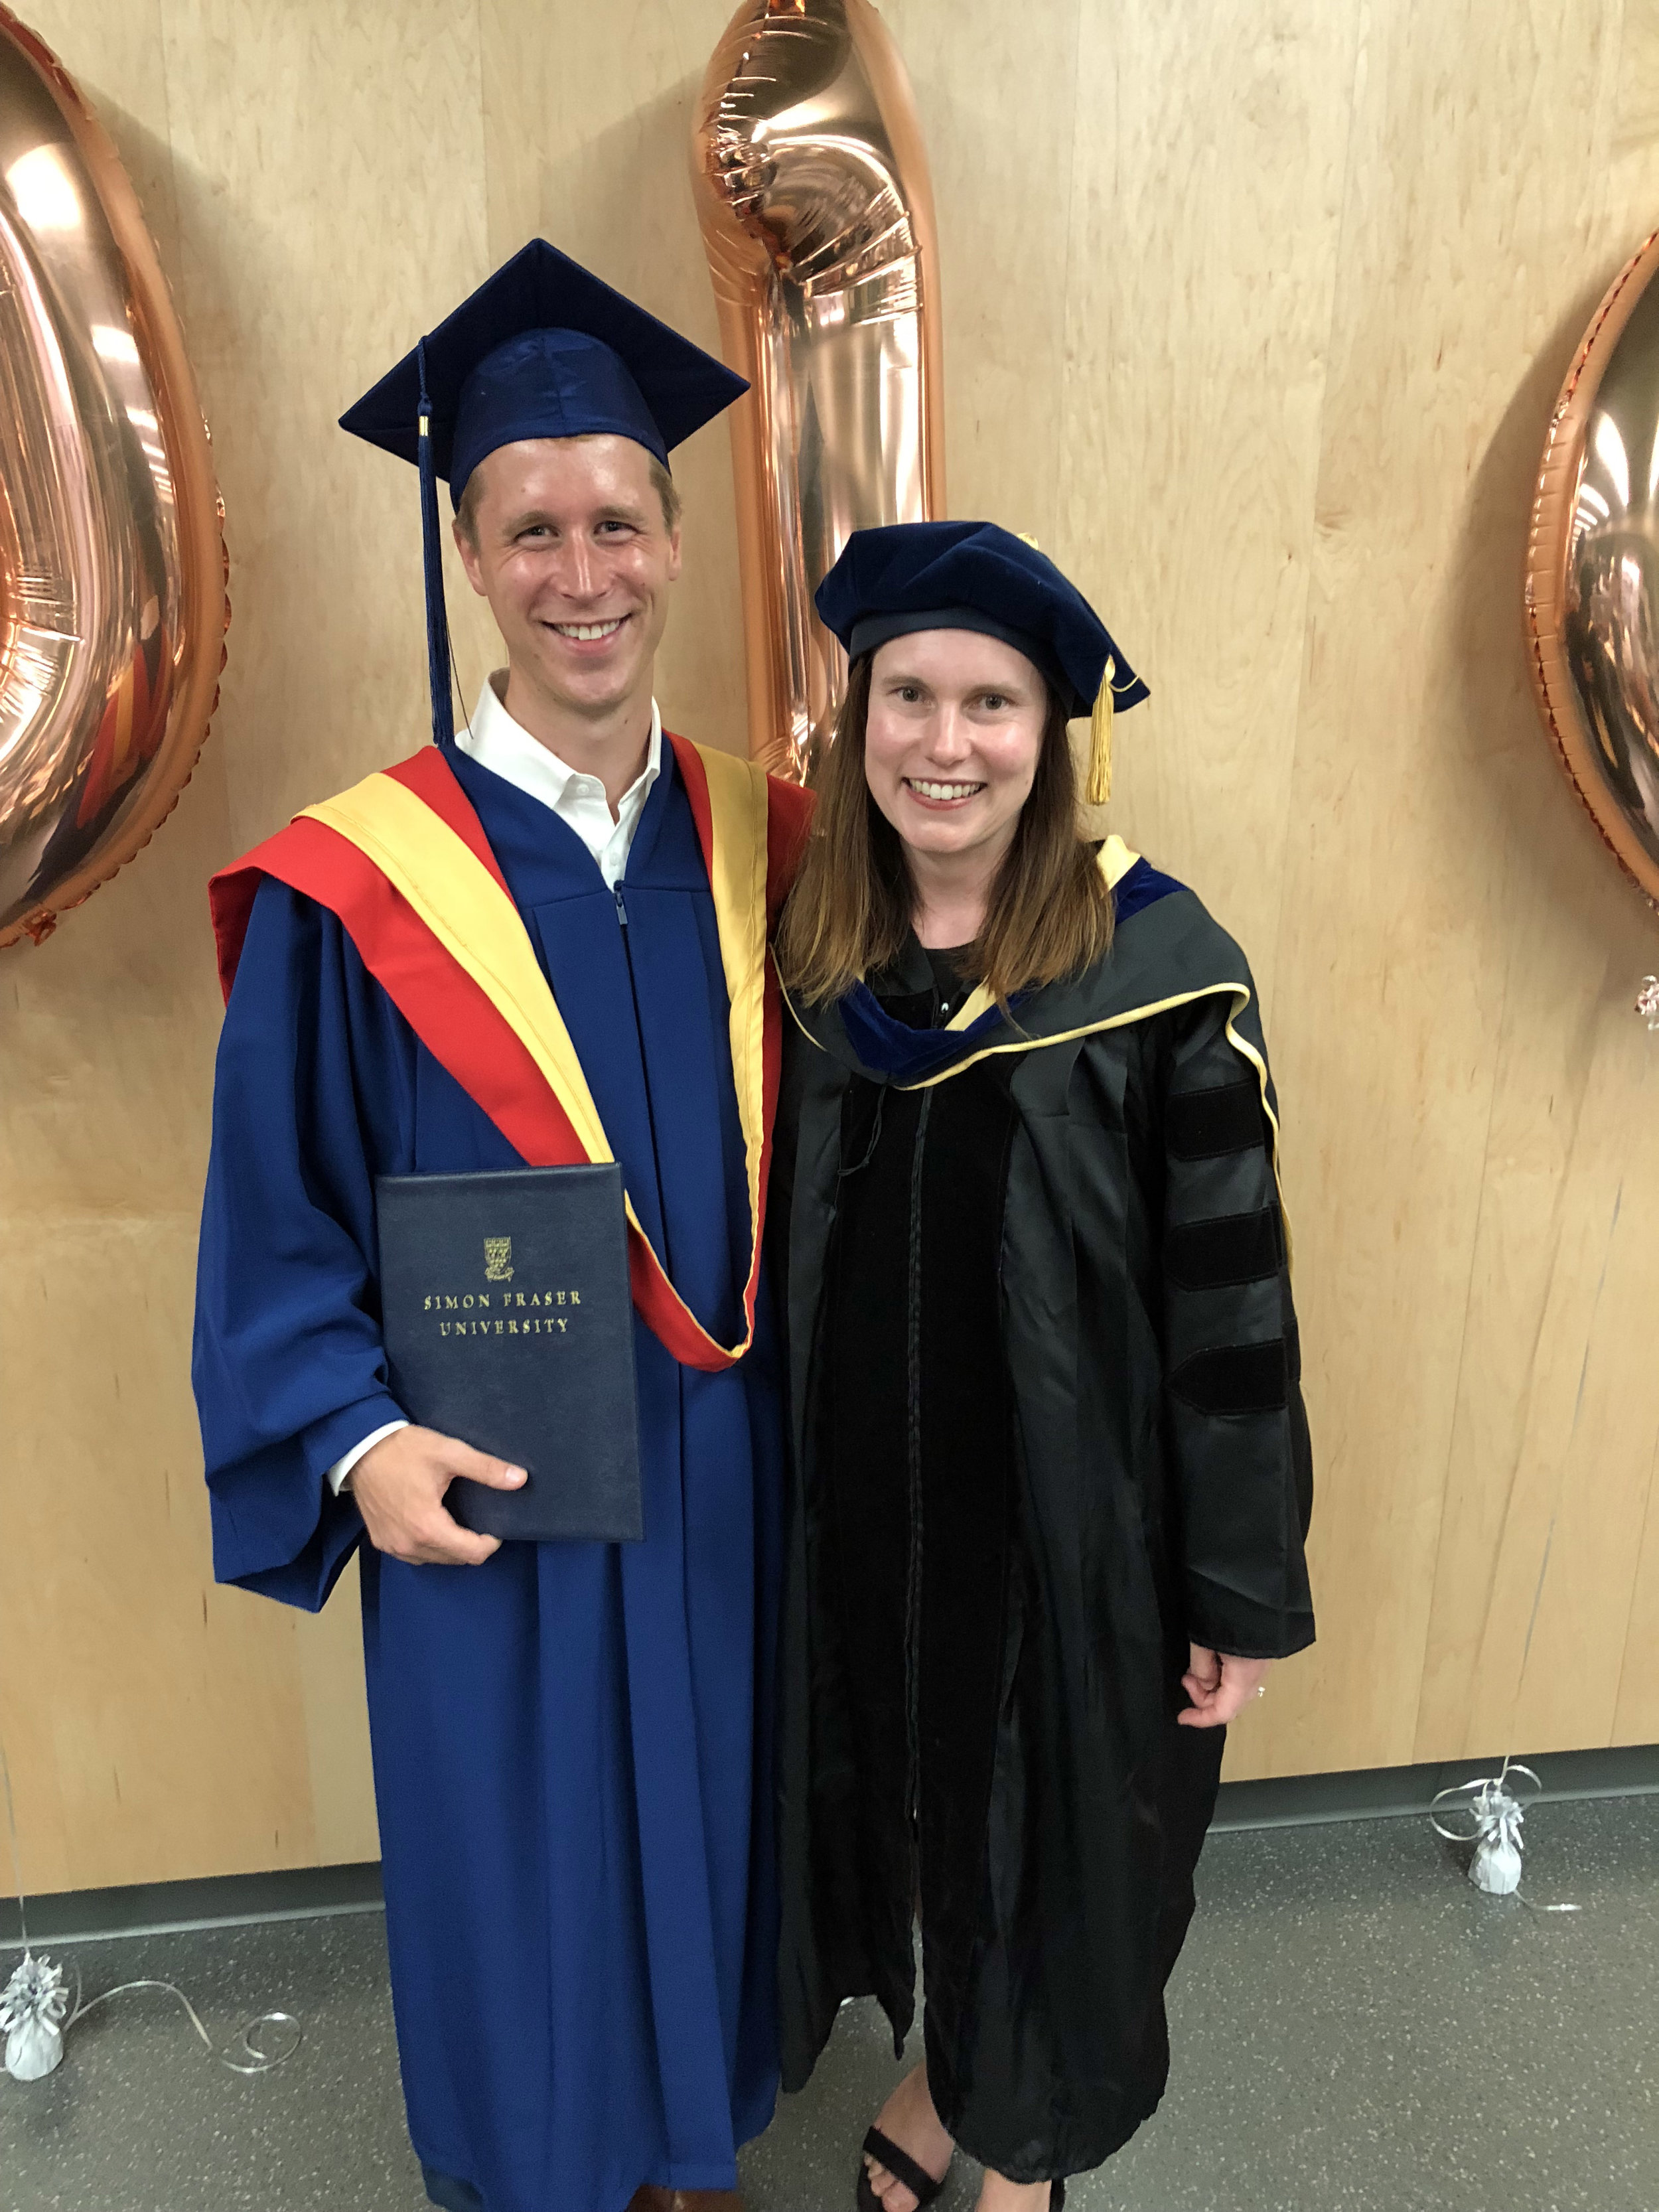 Tim and Dawn at Convocation, June 2019